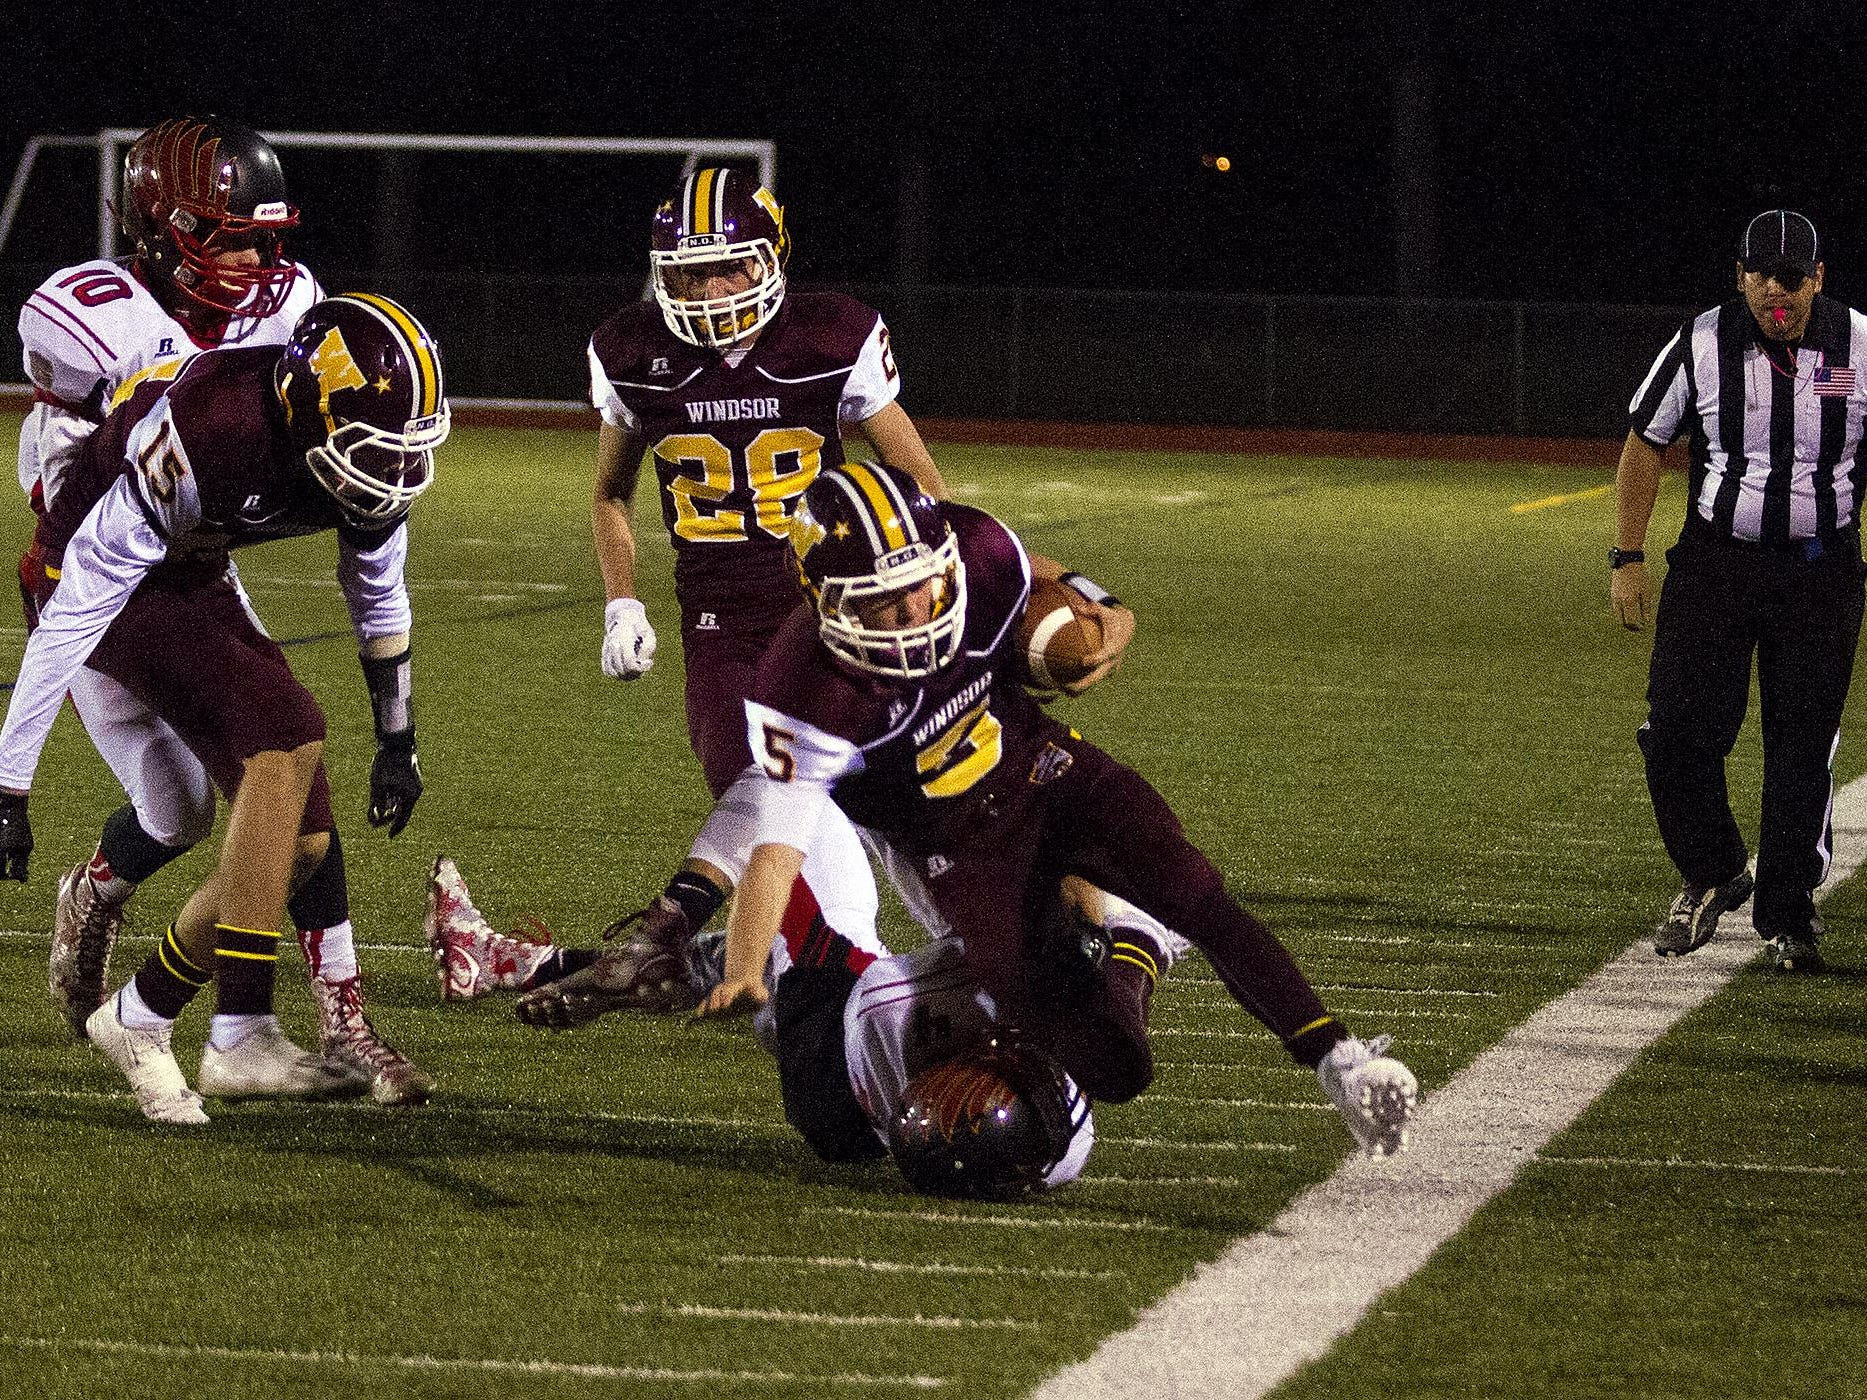 Windsor quarterback Brad Peeples (5) gets taken down at the sideline by Skyline's Josh Balli (4) during first-half action Friday night in Windsor. Michael Bettis/For The Beacon